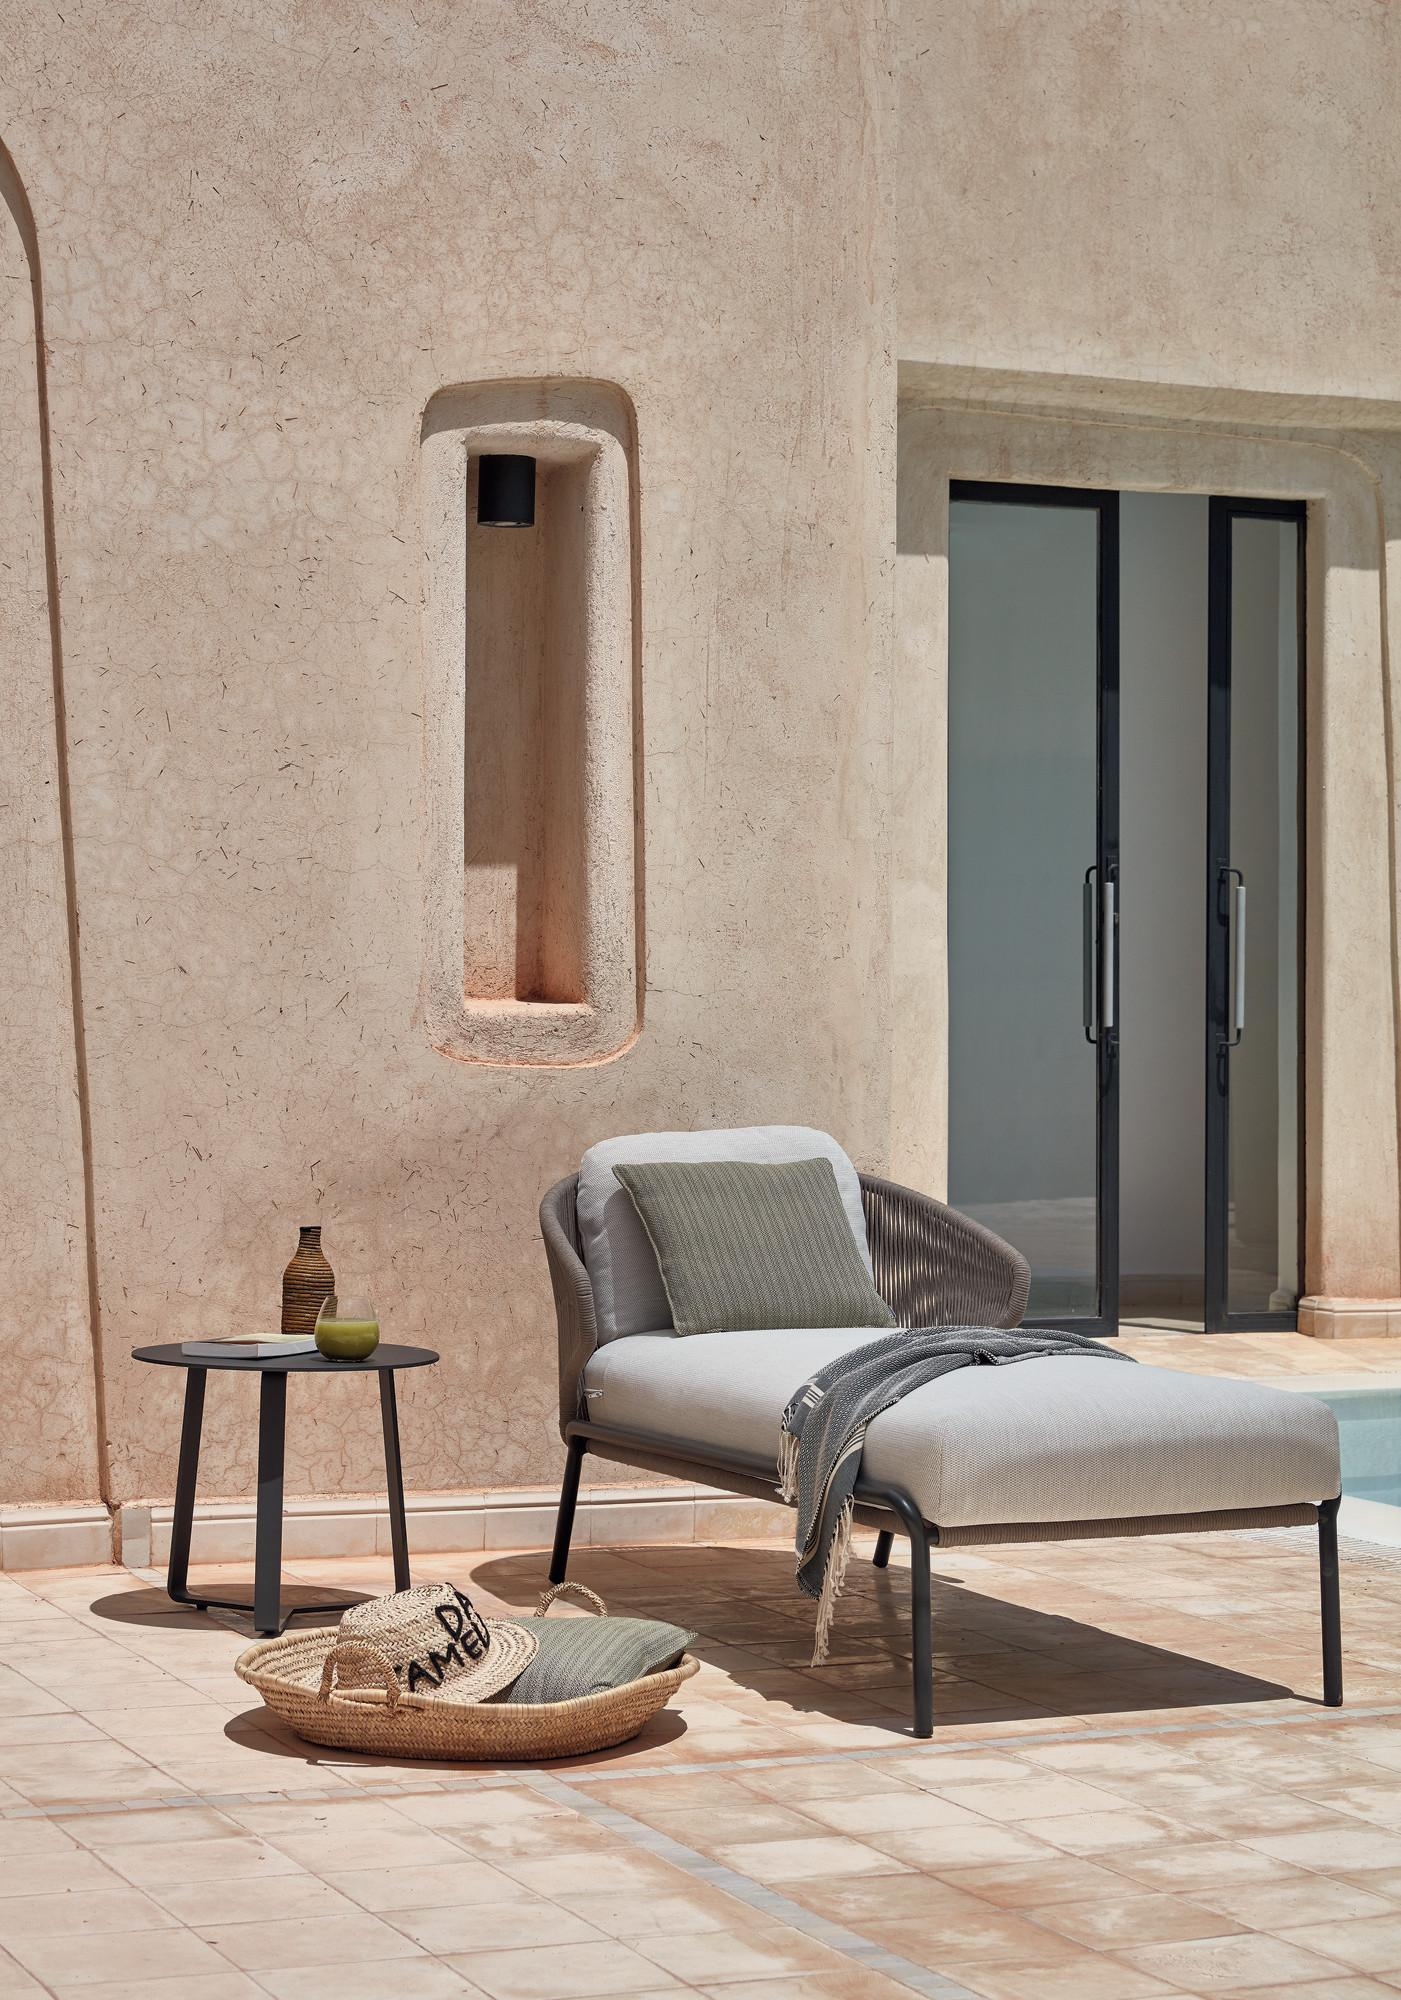 Radius lounger with side table on small terrace